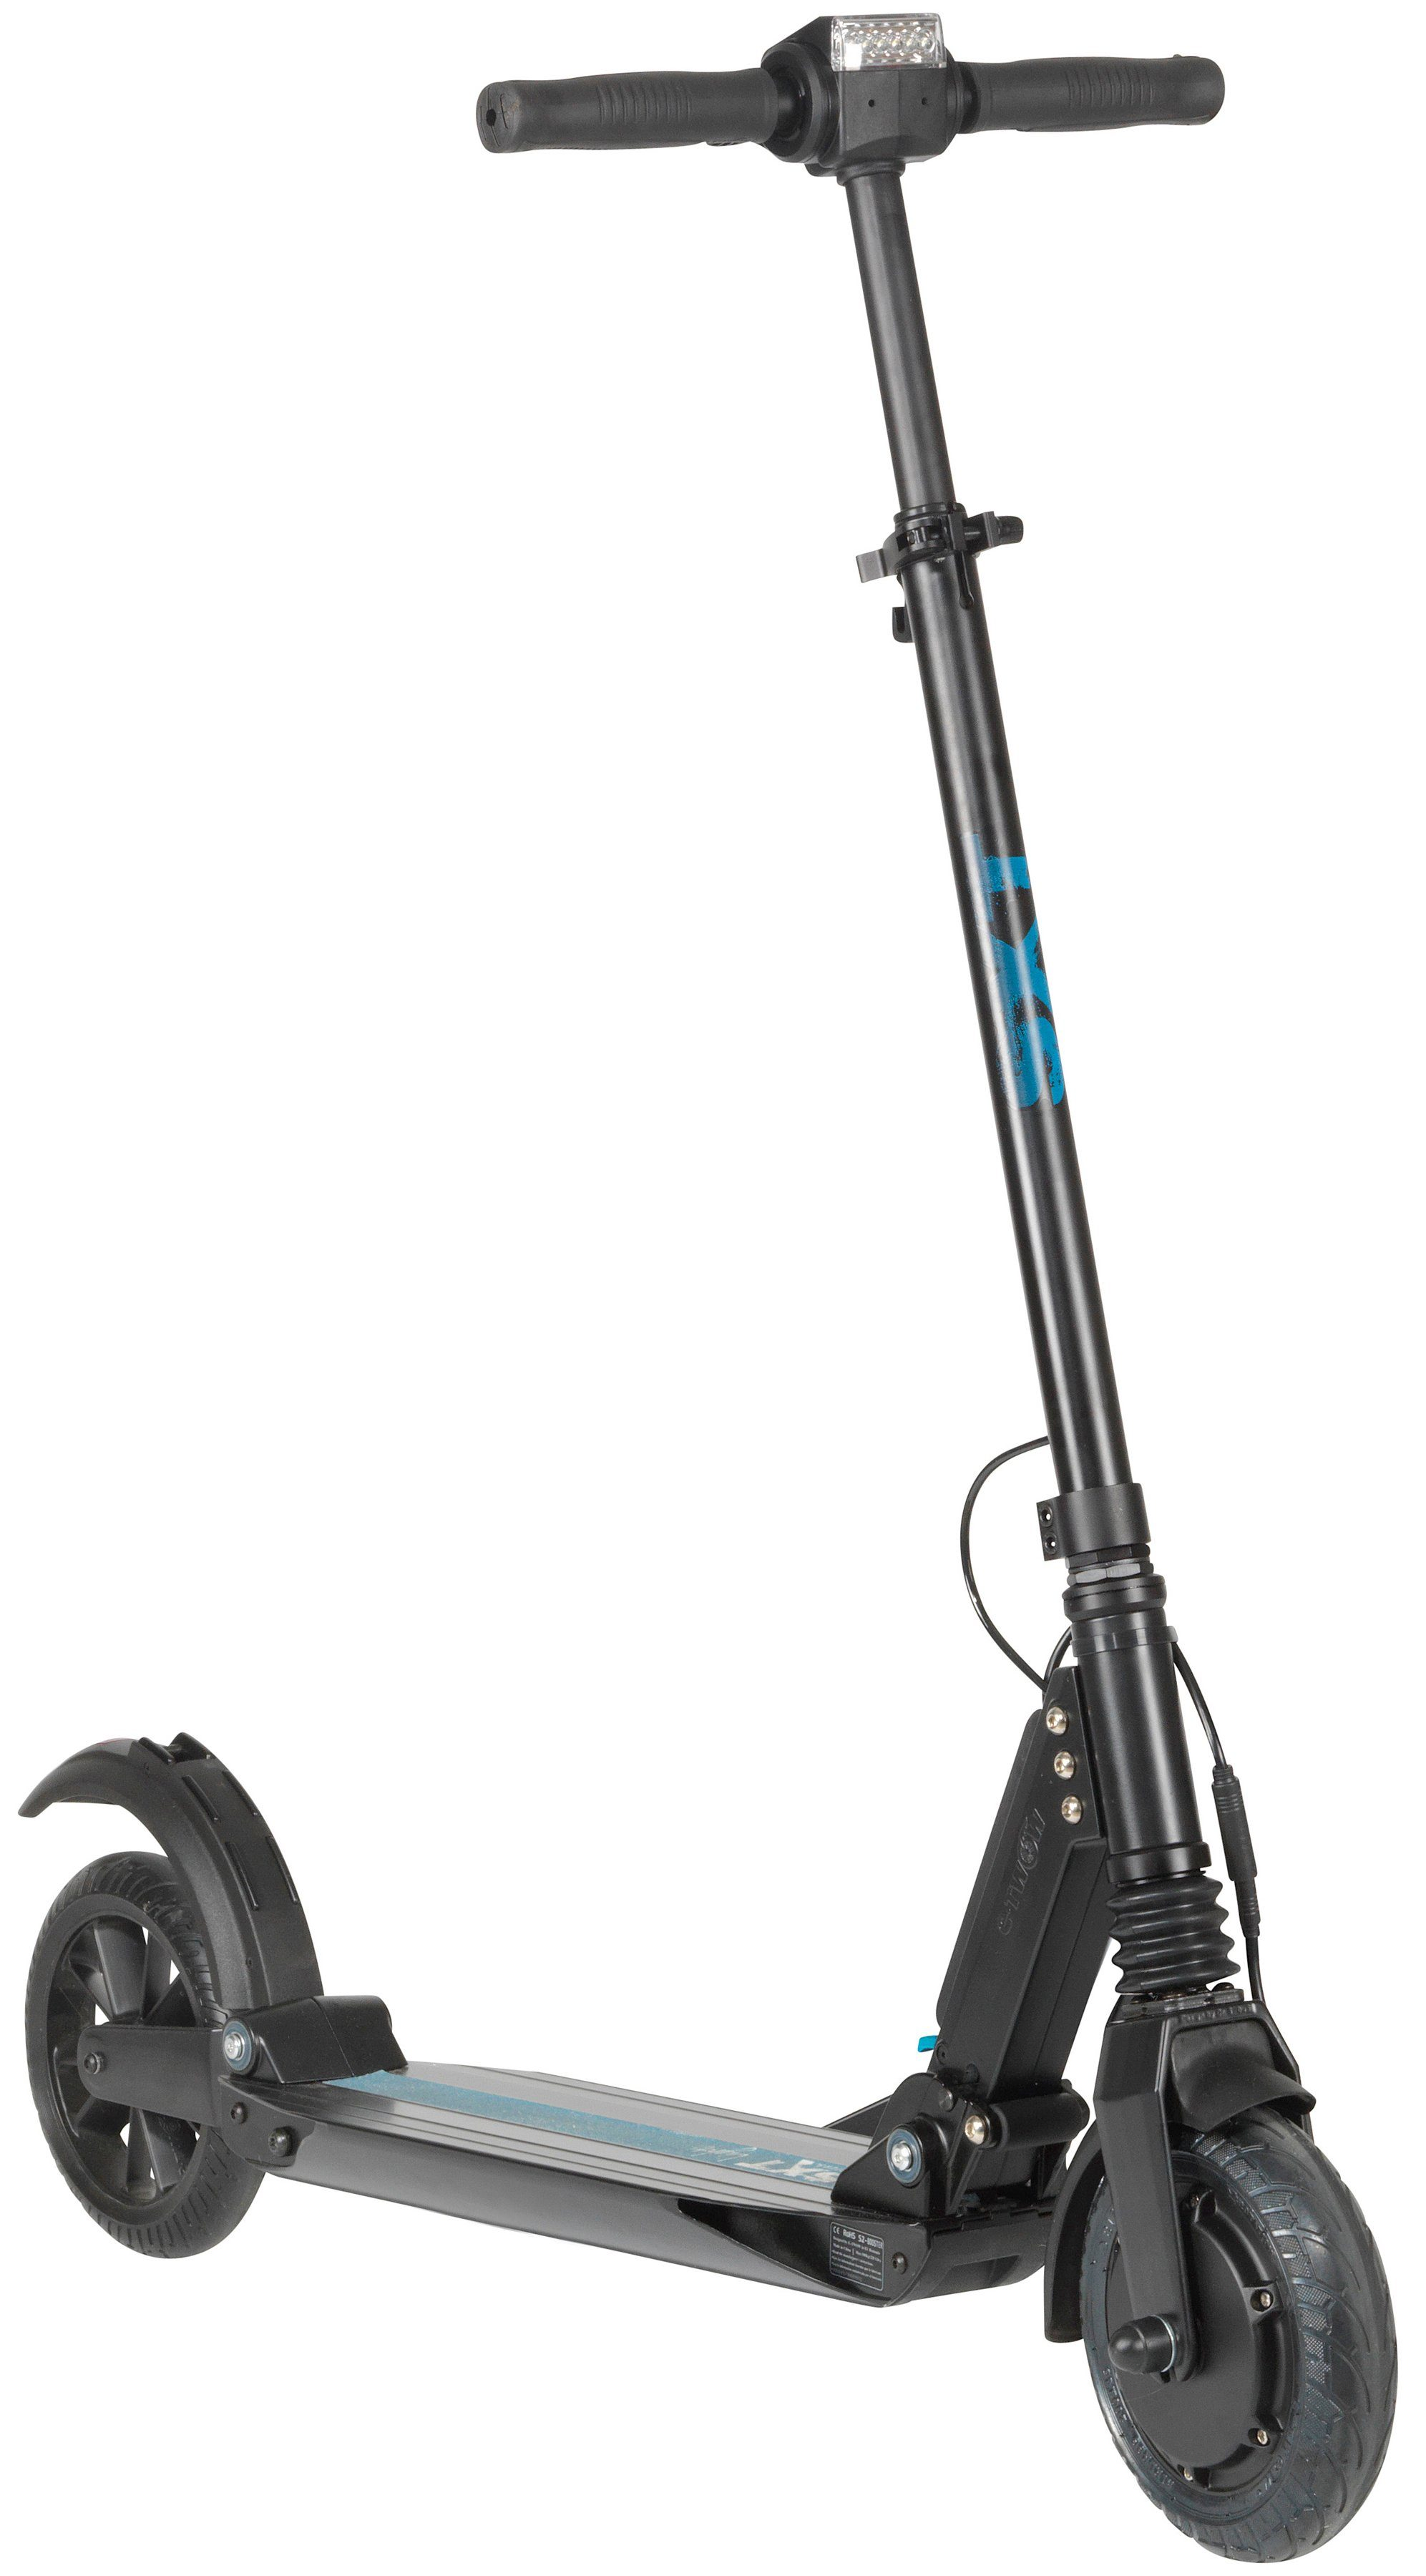 E-Scooter »SXT light Eco«, 350 Watt, 27 km/h